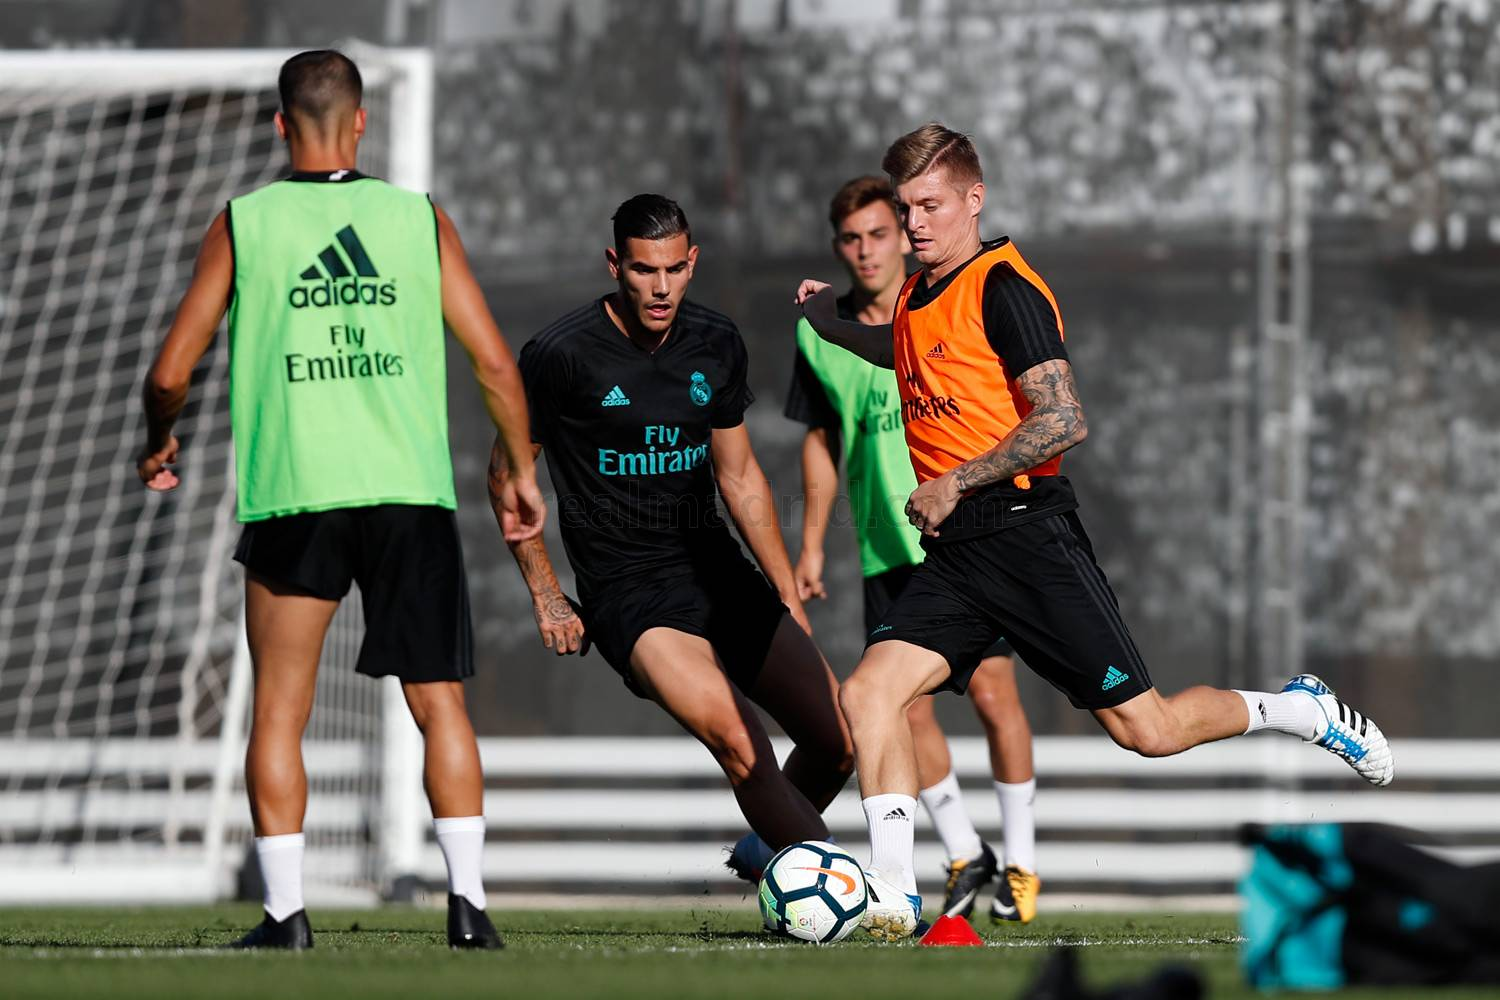 Real Madrid - Entrenamiento del Real Madrid - 10-10-2017